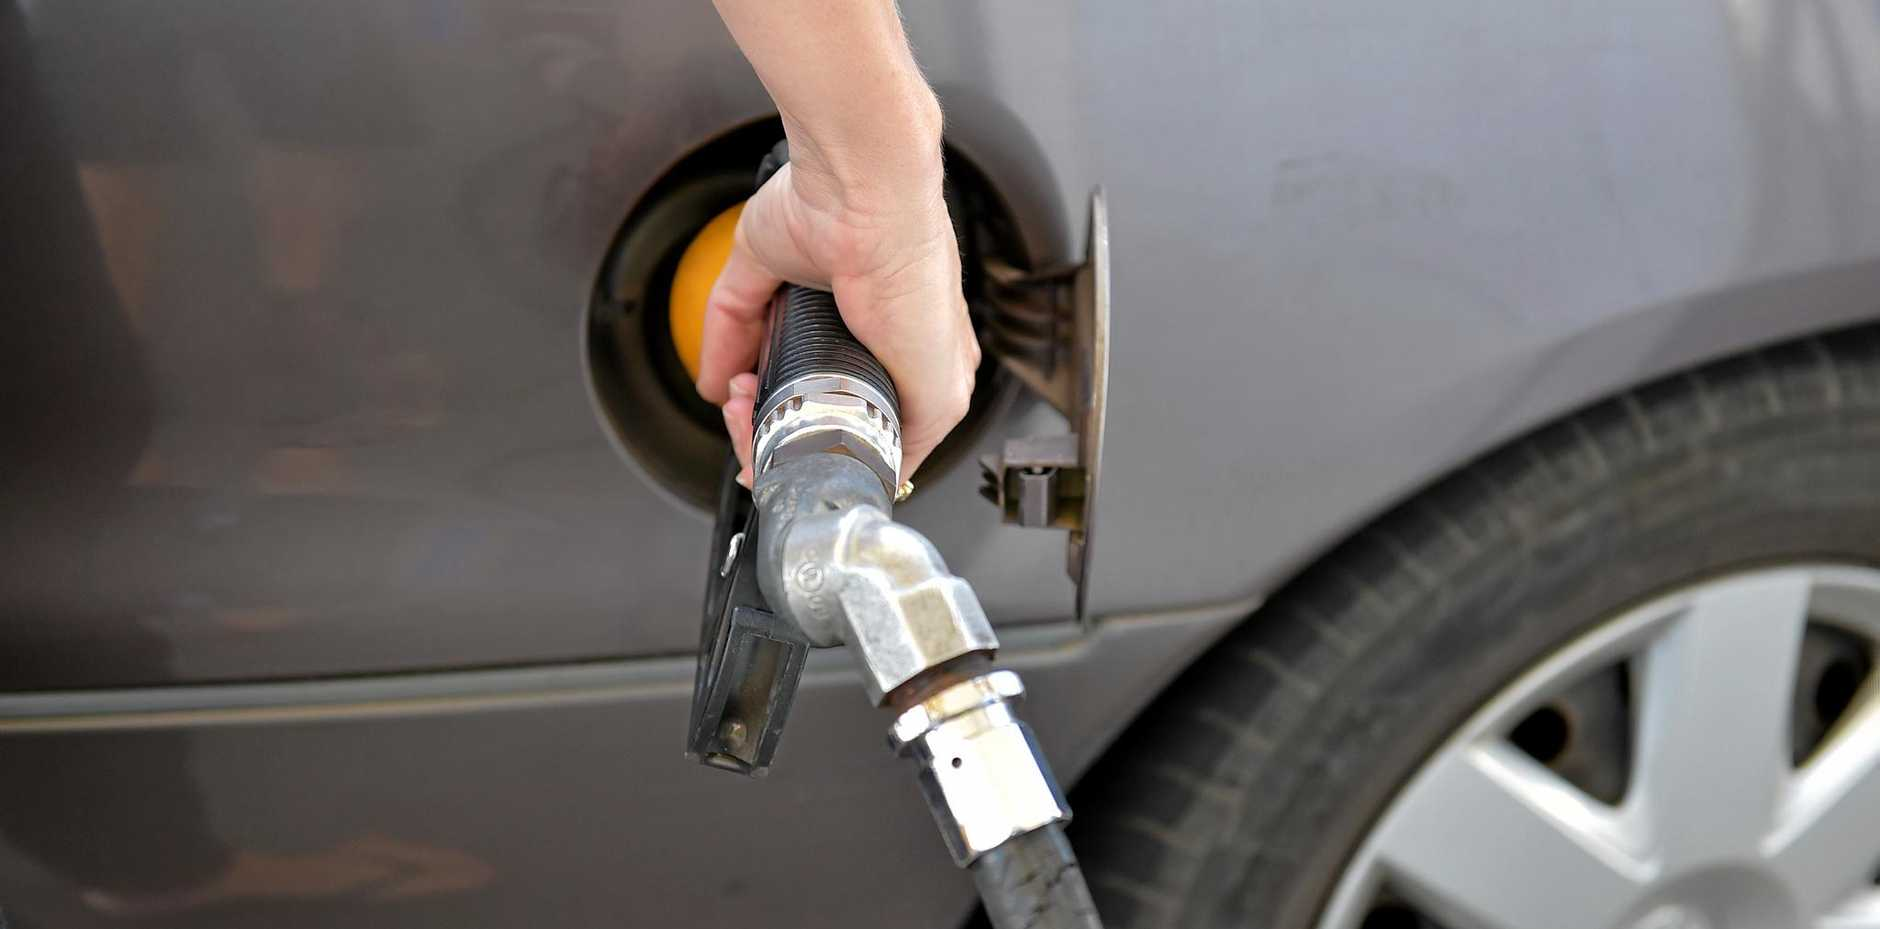 THE RACQ says new fuel regulations should have minimal impact on motorists.